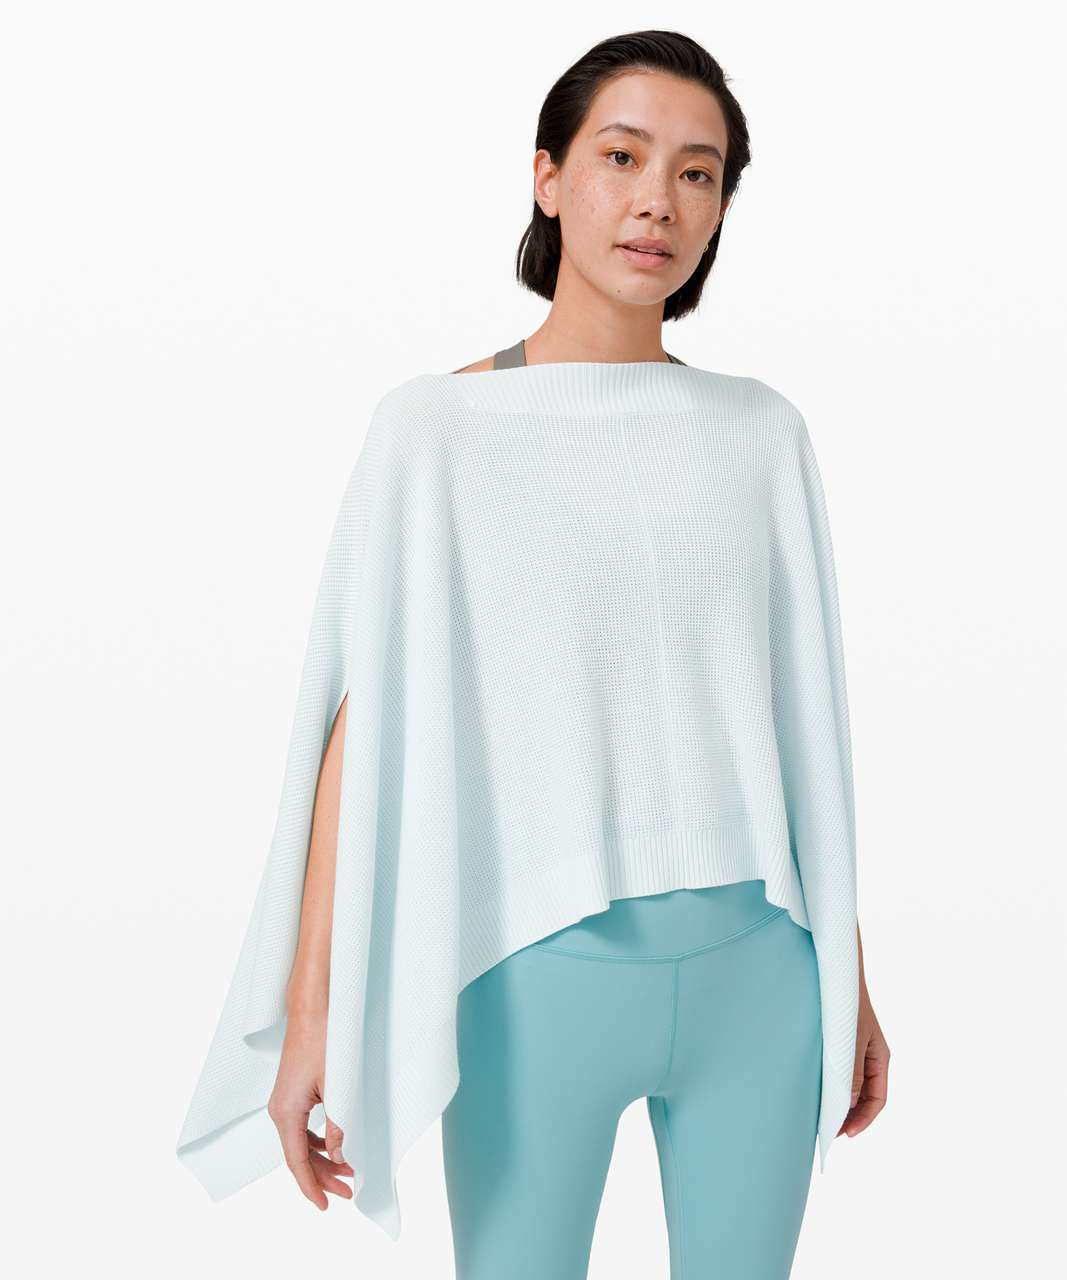 Lululemon Forward Flow Poncho - Almost Blue